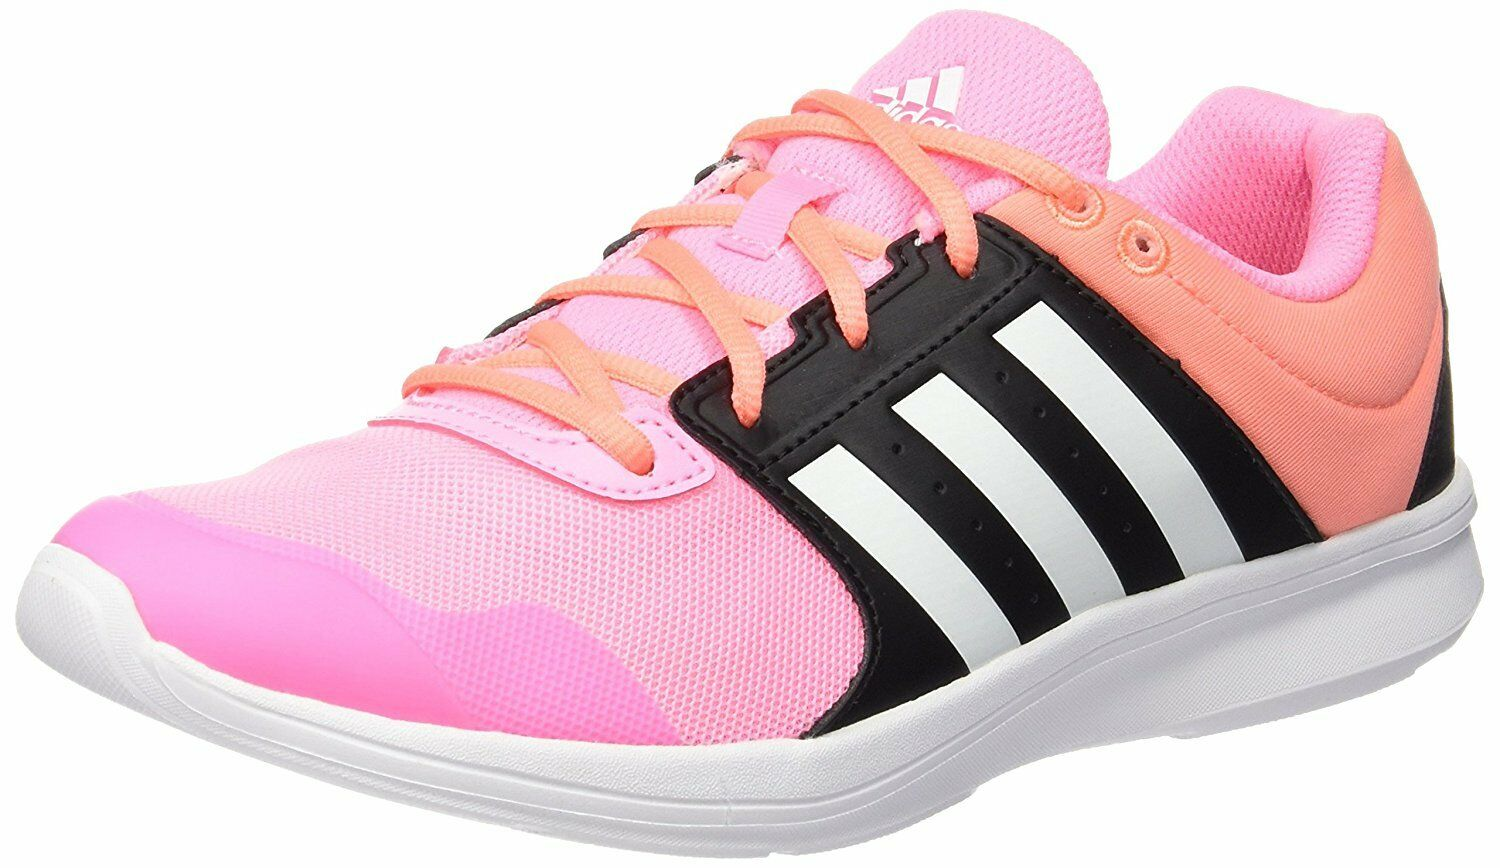 Adidas Women Fun da per 2 scarpe donna Essentials BUAqrU